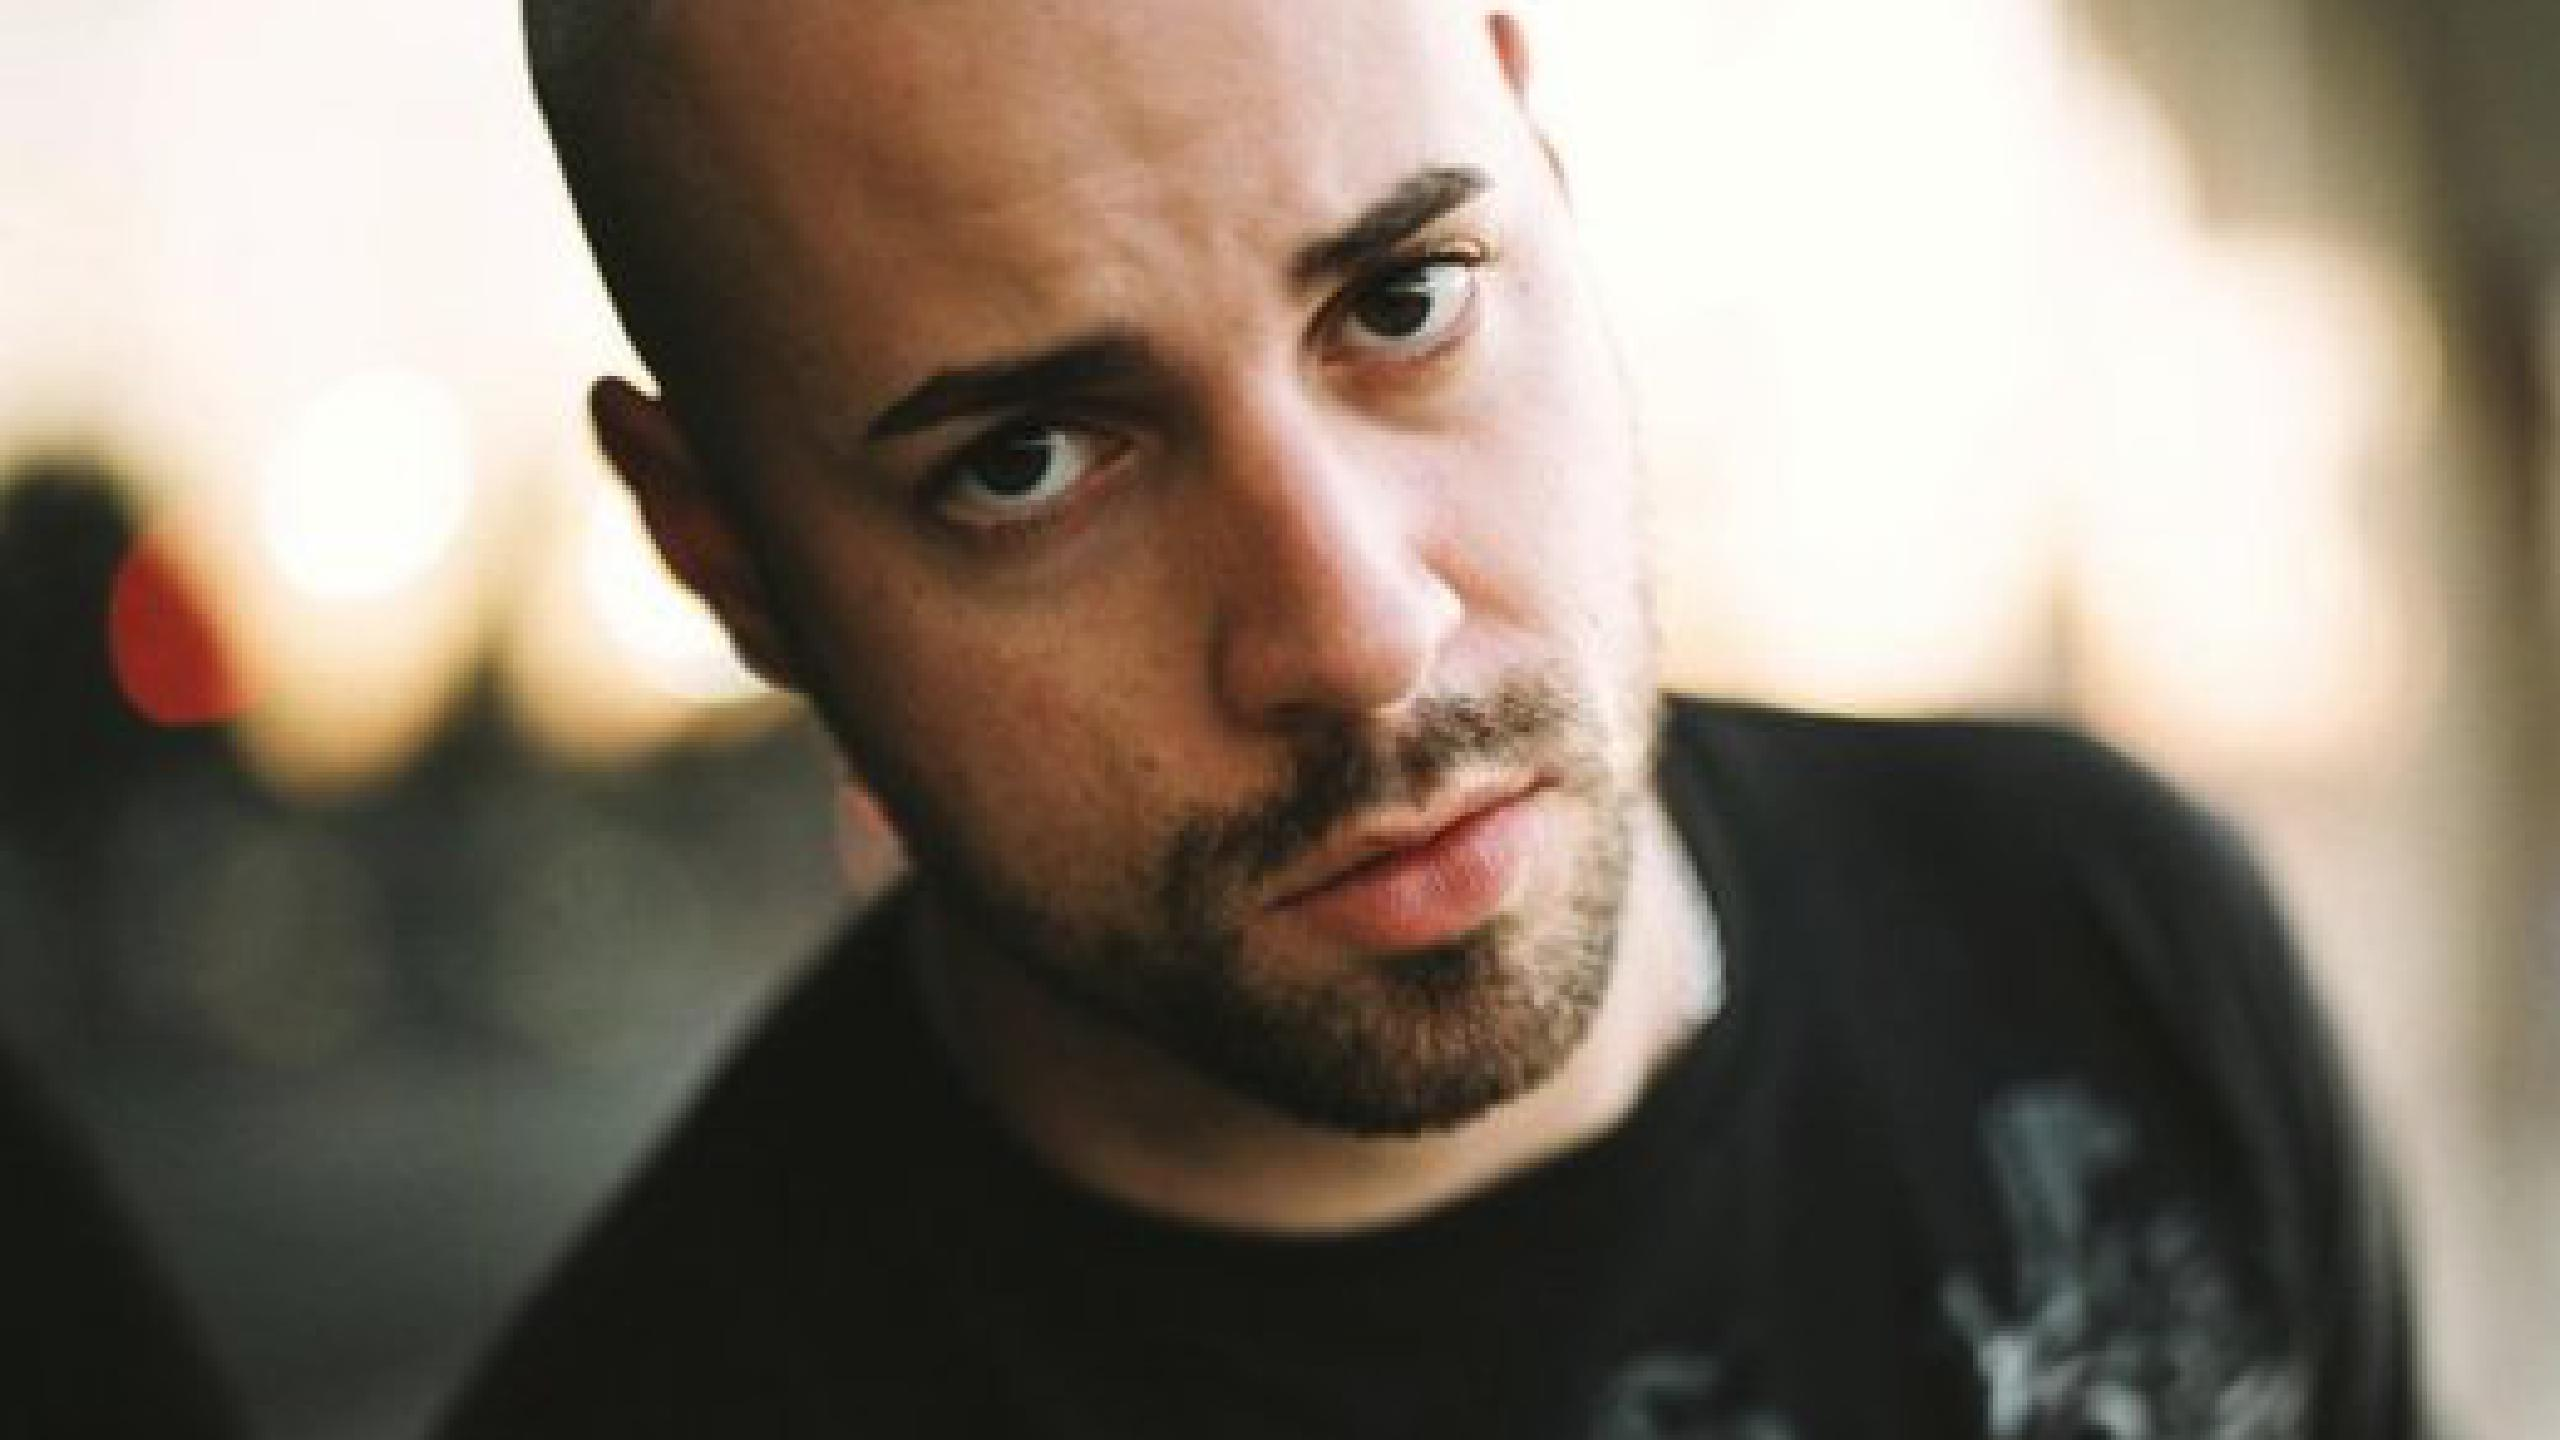 Chris Daughtry Tour 2020 Chris Daughtry tour dates 2019 2020. Chris Daughtry tickets and